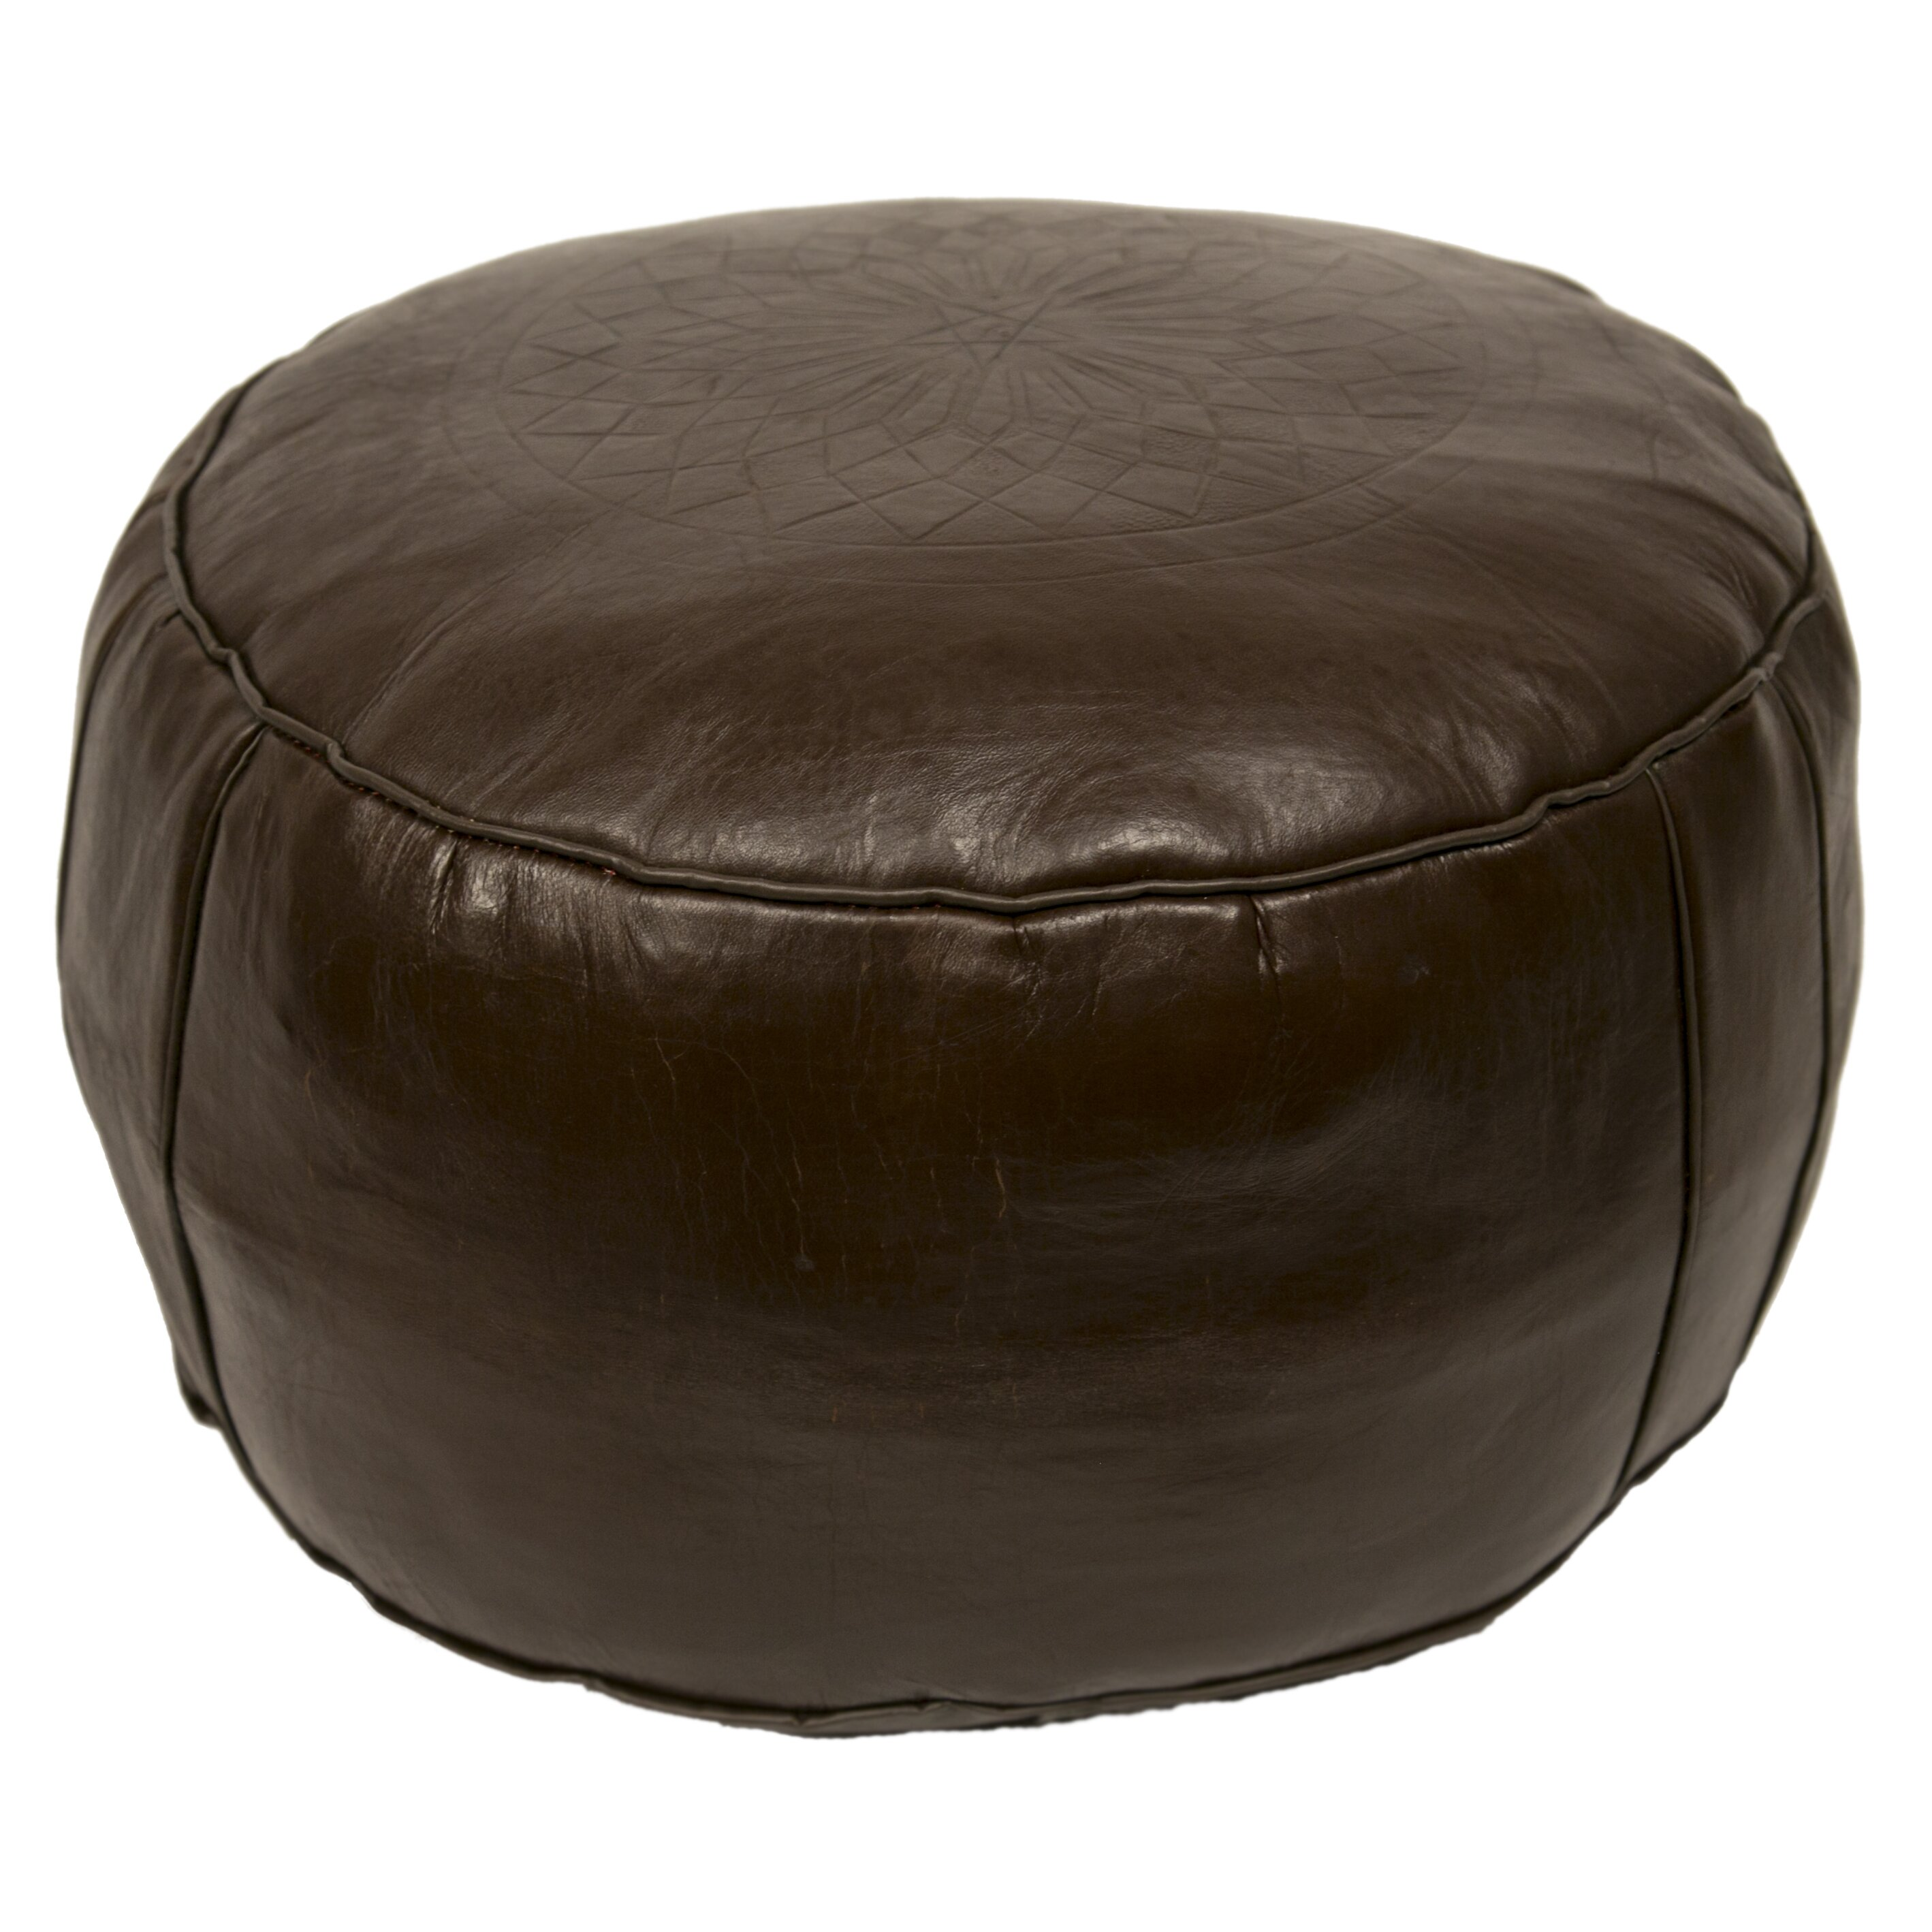 casablanca market moroccan leather pouf ottoman iii reviews wayfair. Black Bedroom Furniture Sets. Home Design Ideas